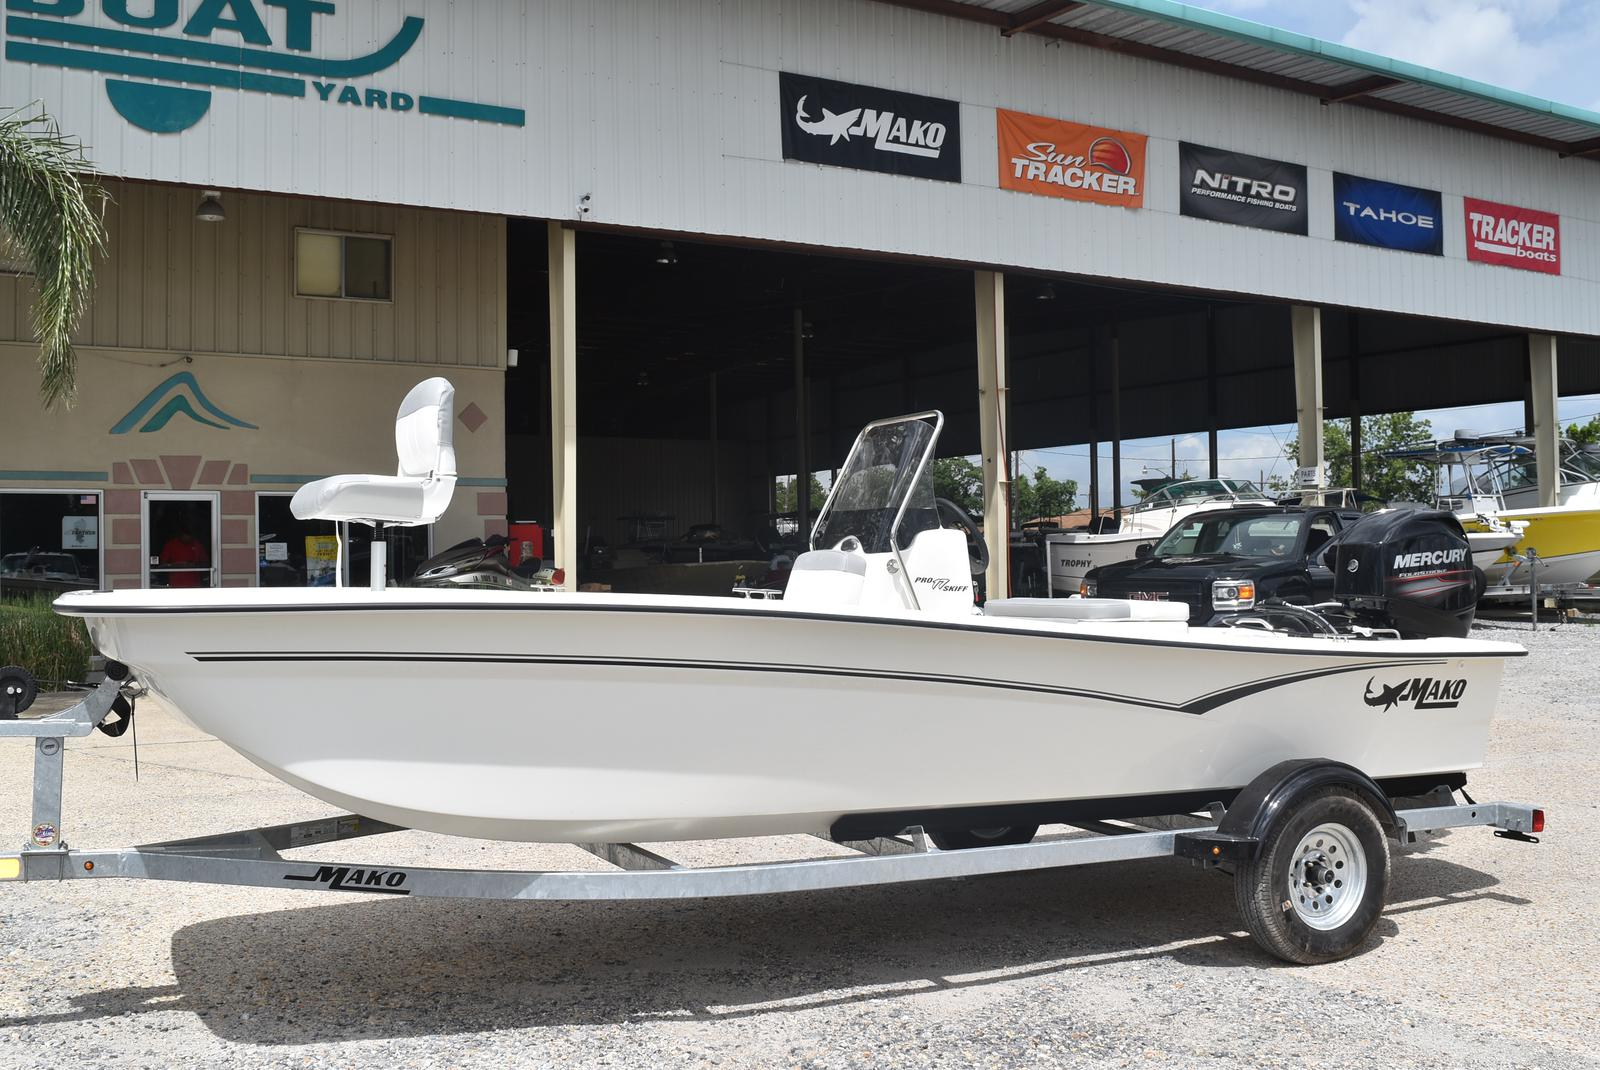 2020 Mako boat for sale, model of the boat is Pro Skiff 17, 75 ELPT & Image # 156 of 702